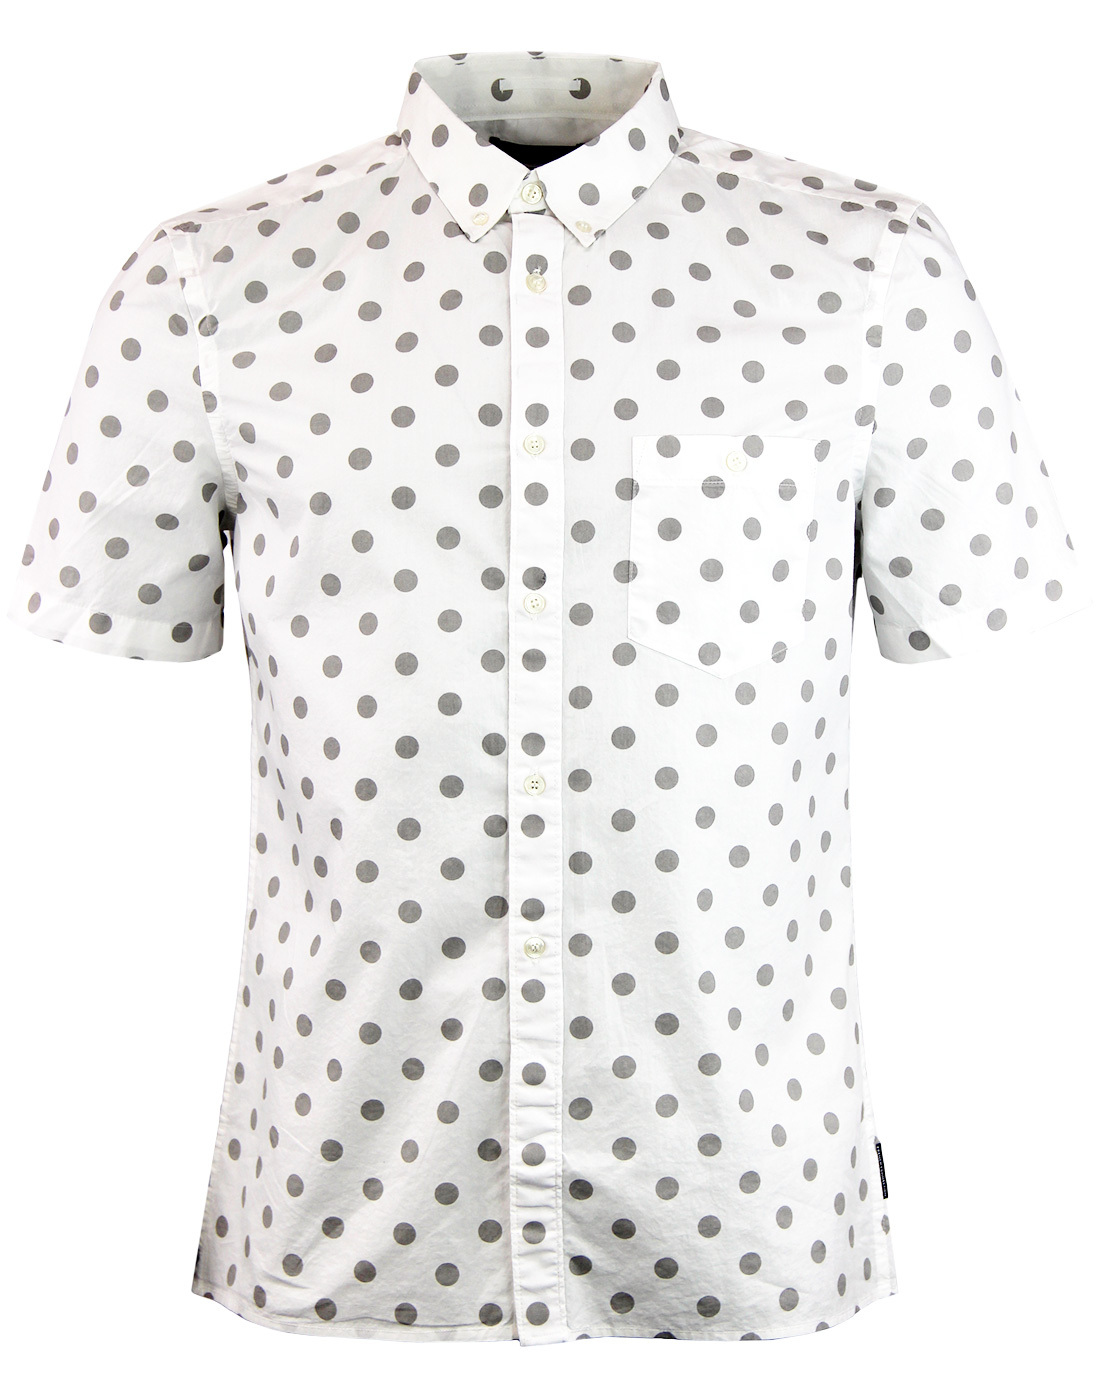 b48e9cb5069 FRENCH CONNECTION Mens Mod 60s Big Polka Dot Shirt in White